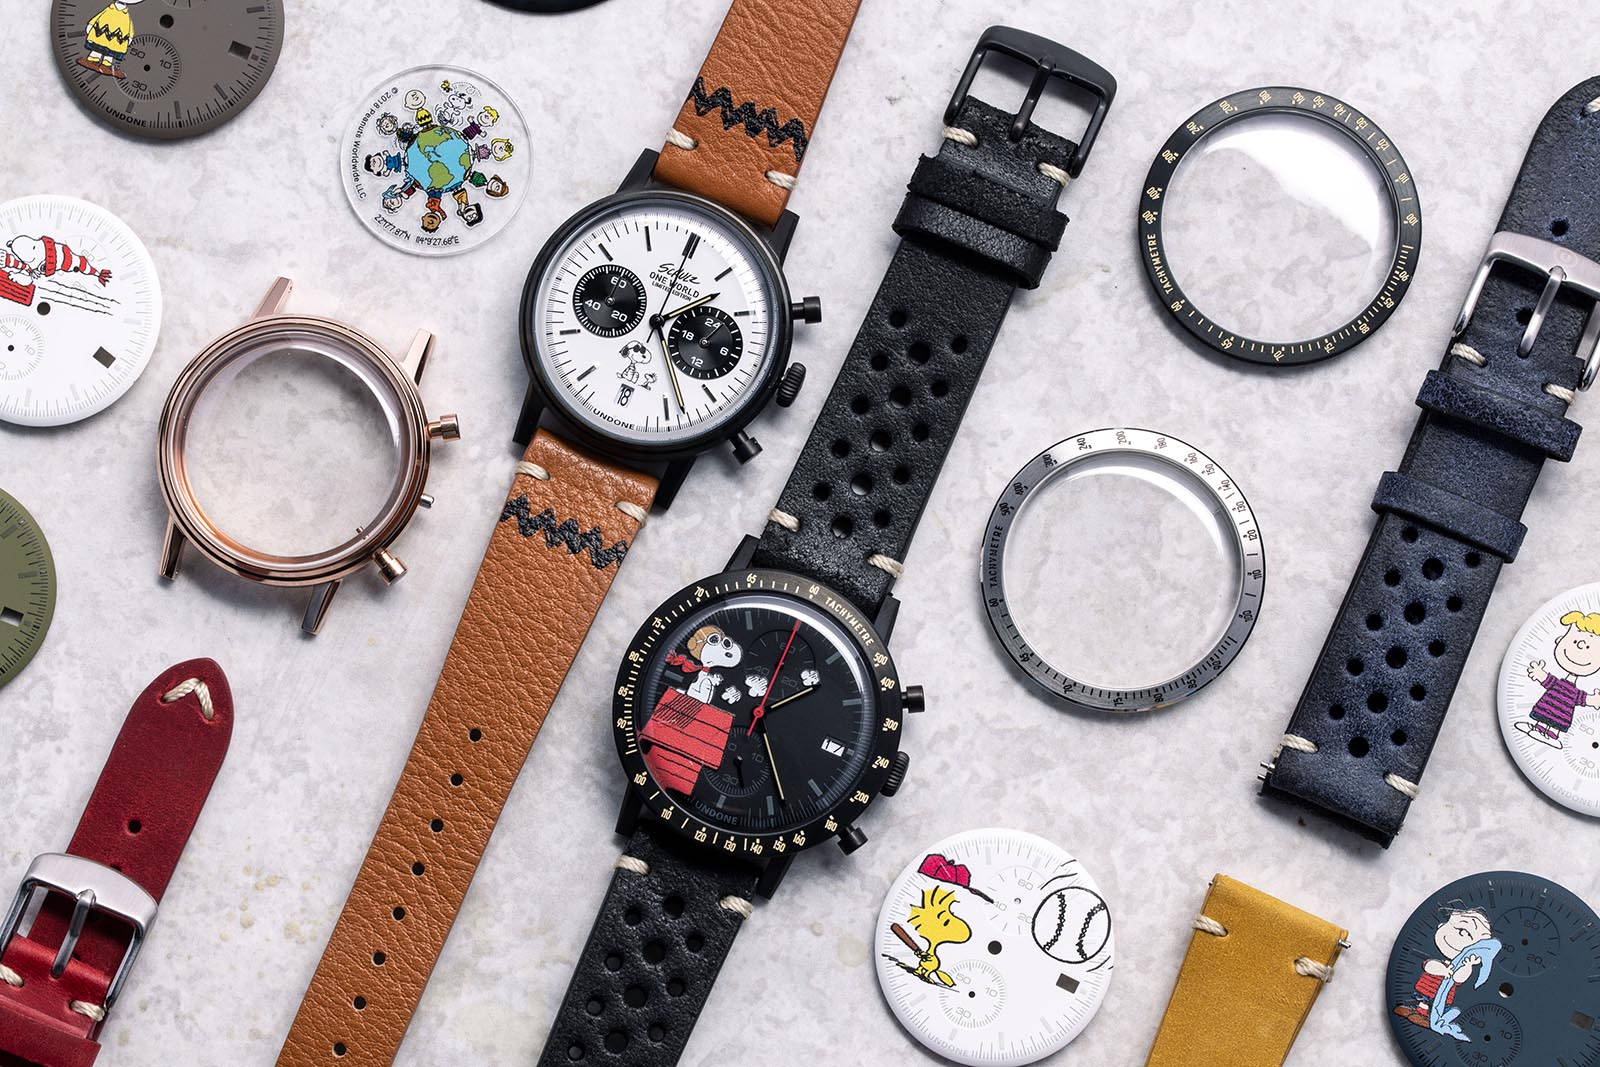 Undone Peanuts Urban One World Chronograph Collection